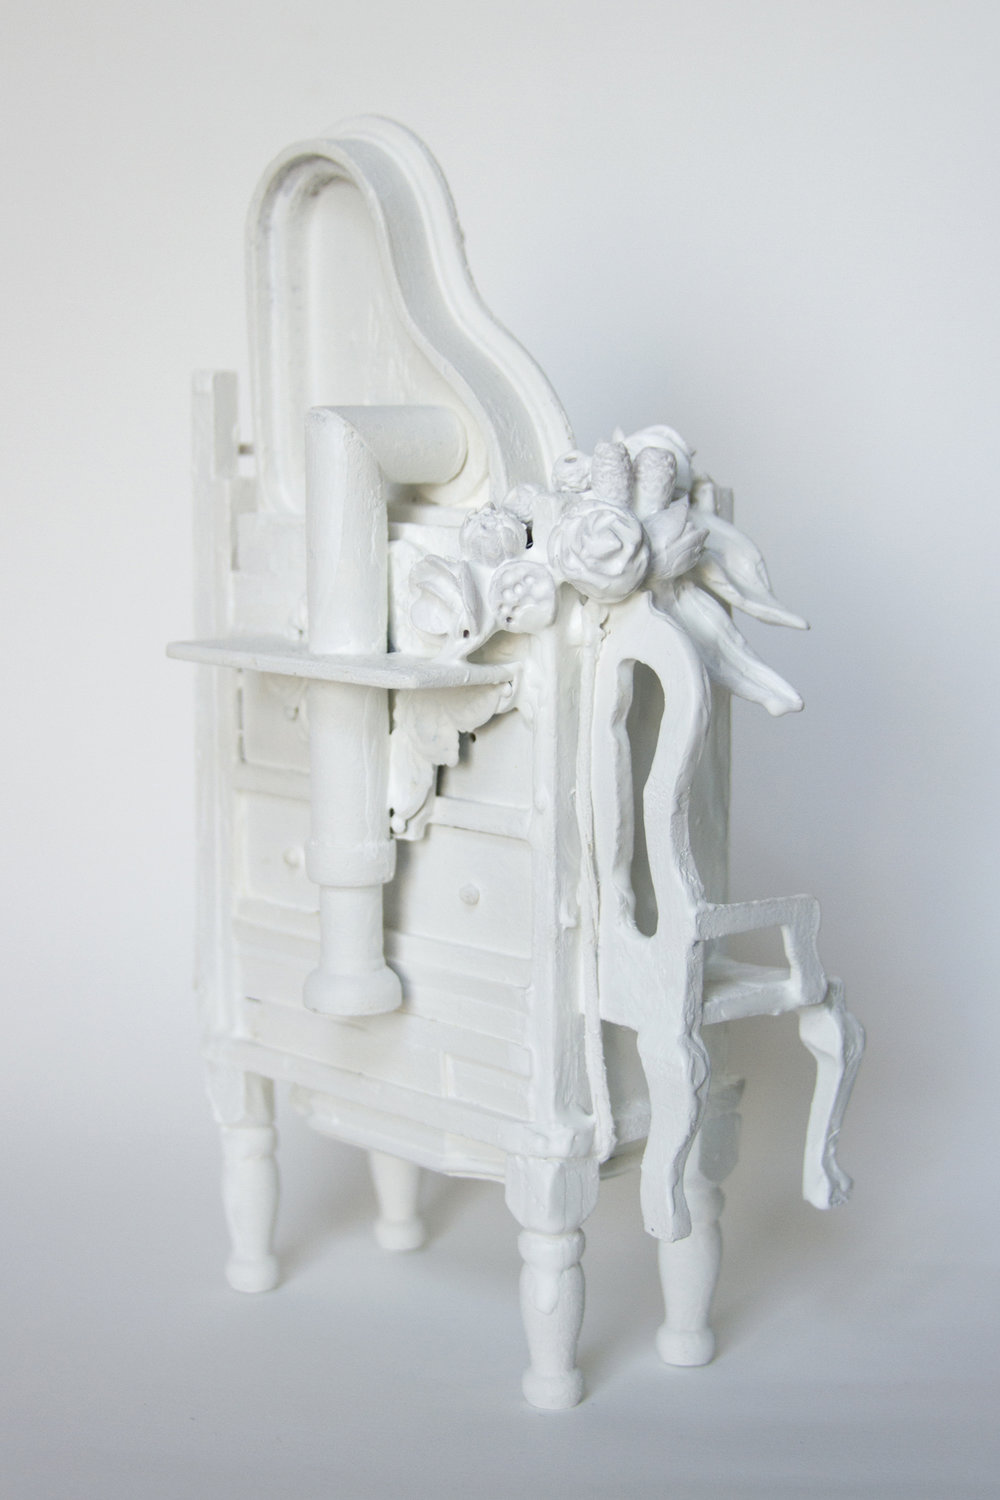 Chelsea Revelle,  Flight of Fancy: Fragility of Silence Series,  Dollhouse assemblage, 8x5x3